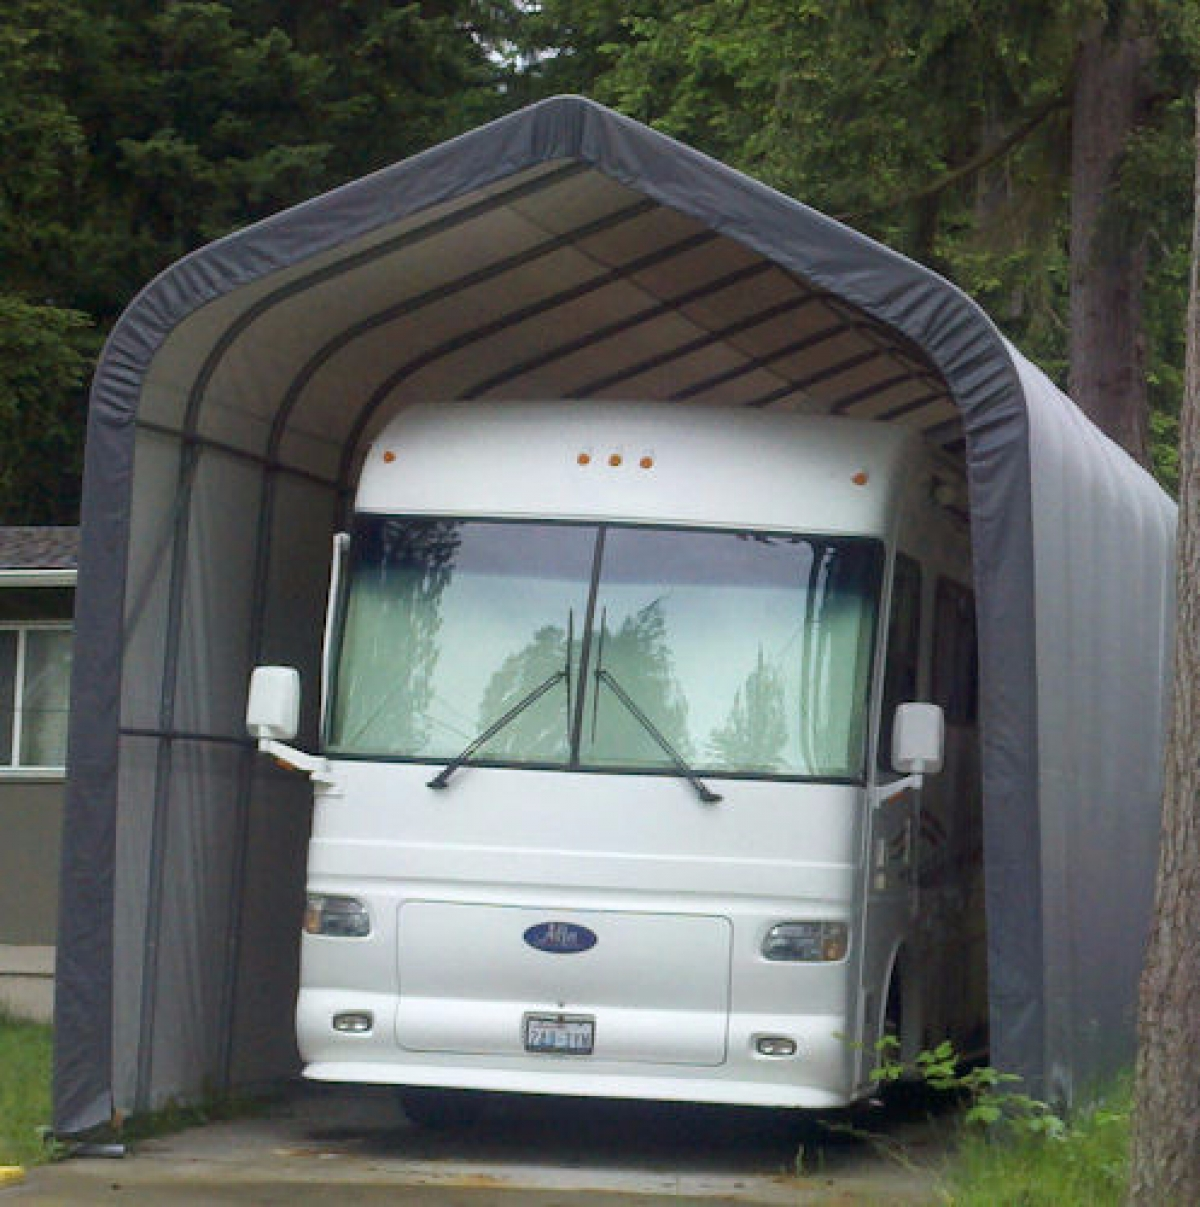 Portable Garage Shelter for Motorhome, 5th Wheel, RV and ...